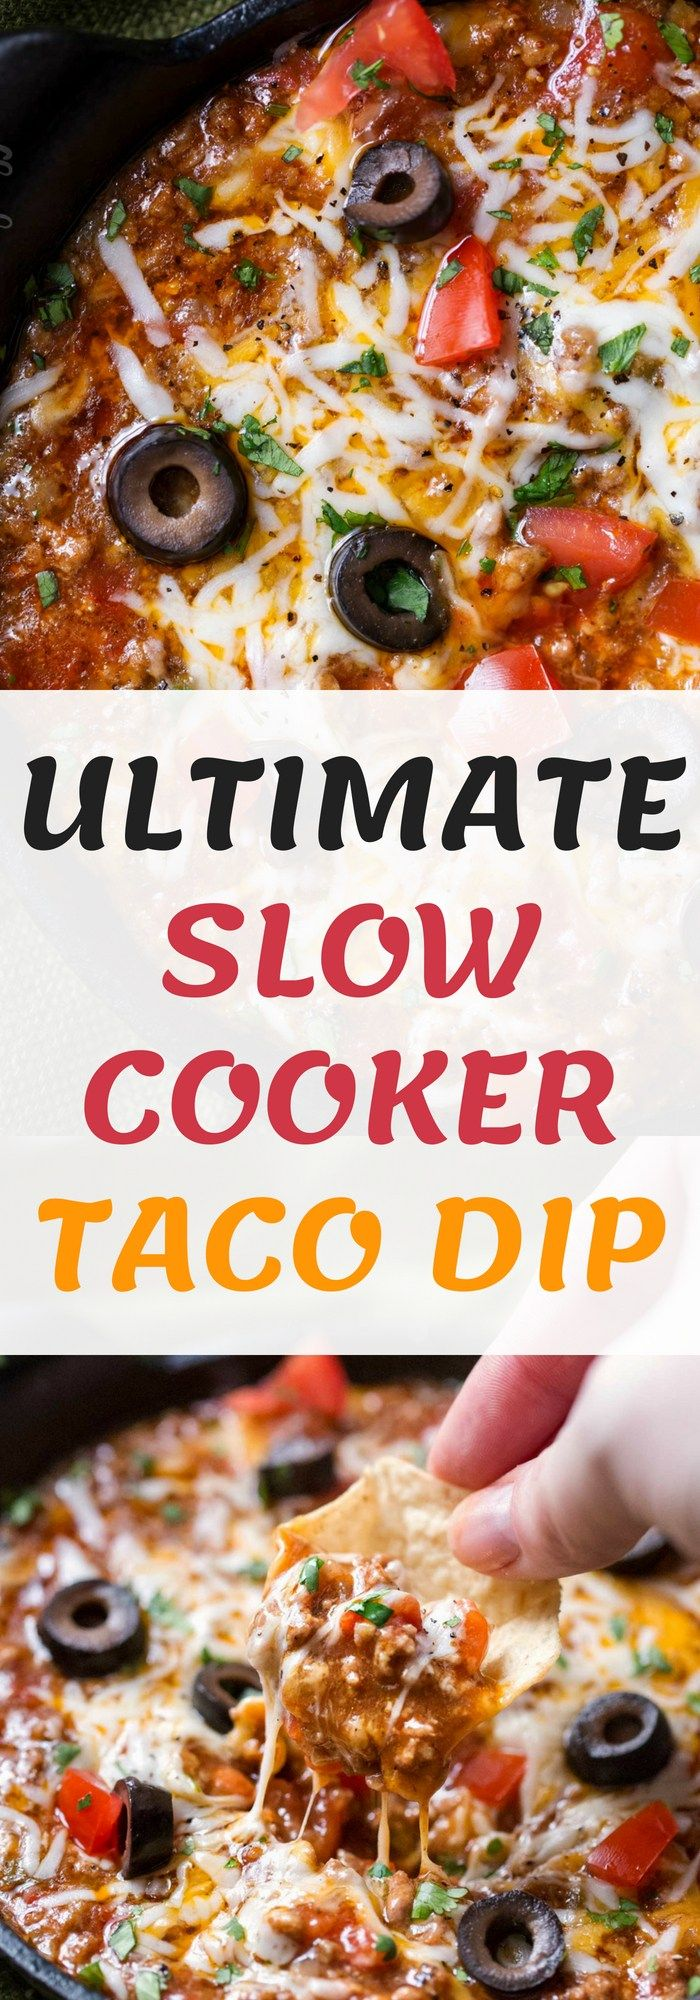 Ultimate Slow Cooker Taco Dip Net Feed Daily Slow Cooker Tacos Taco Dip Slow Cooker Dips